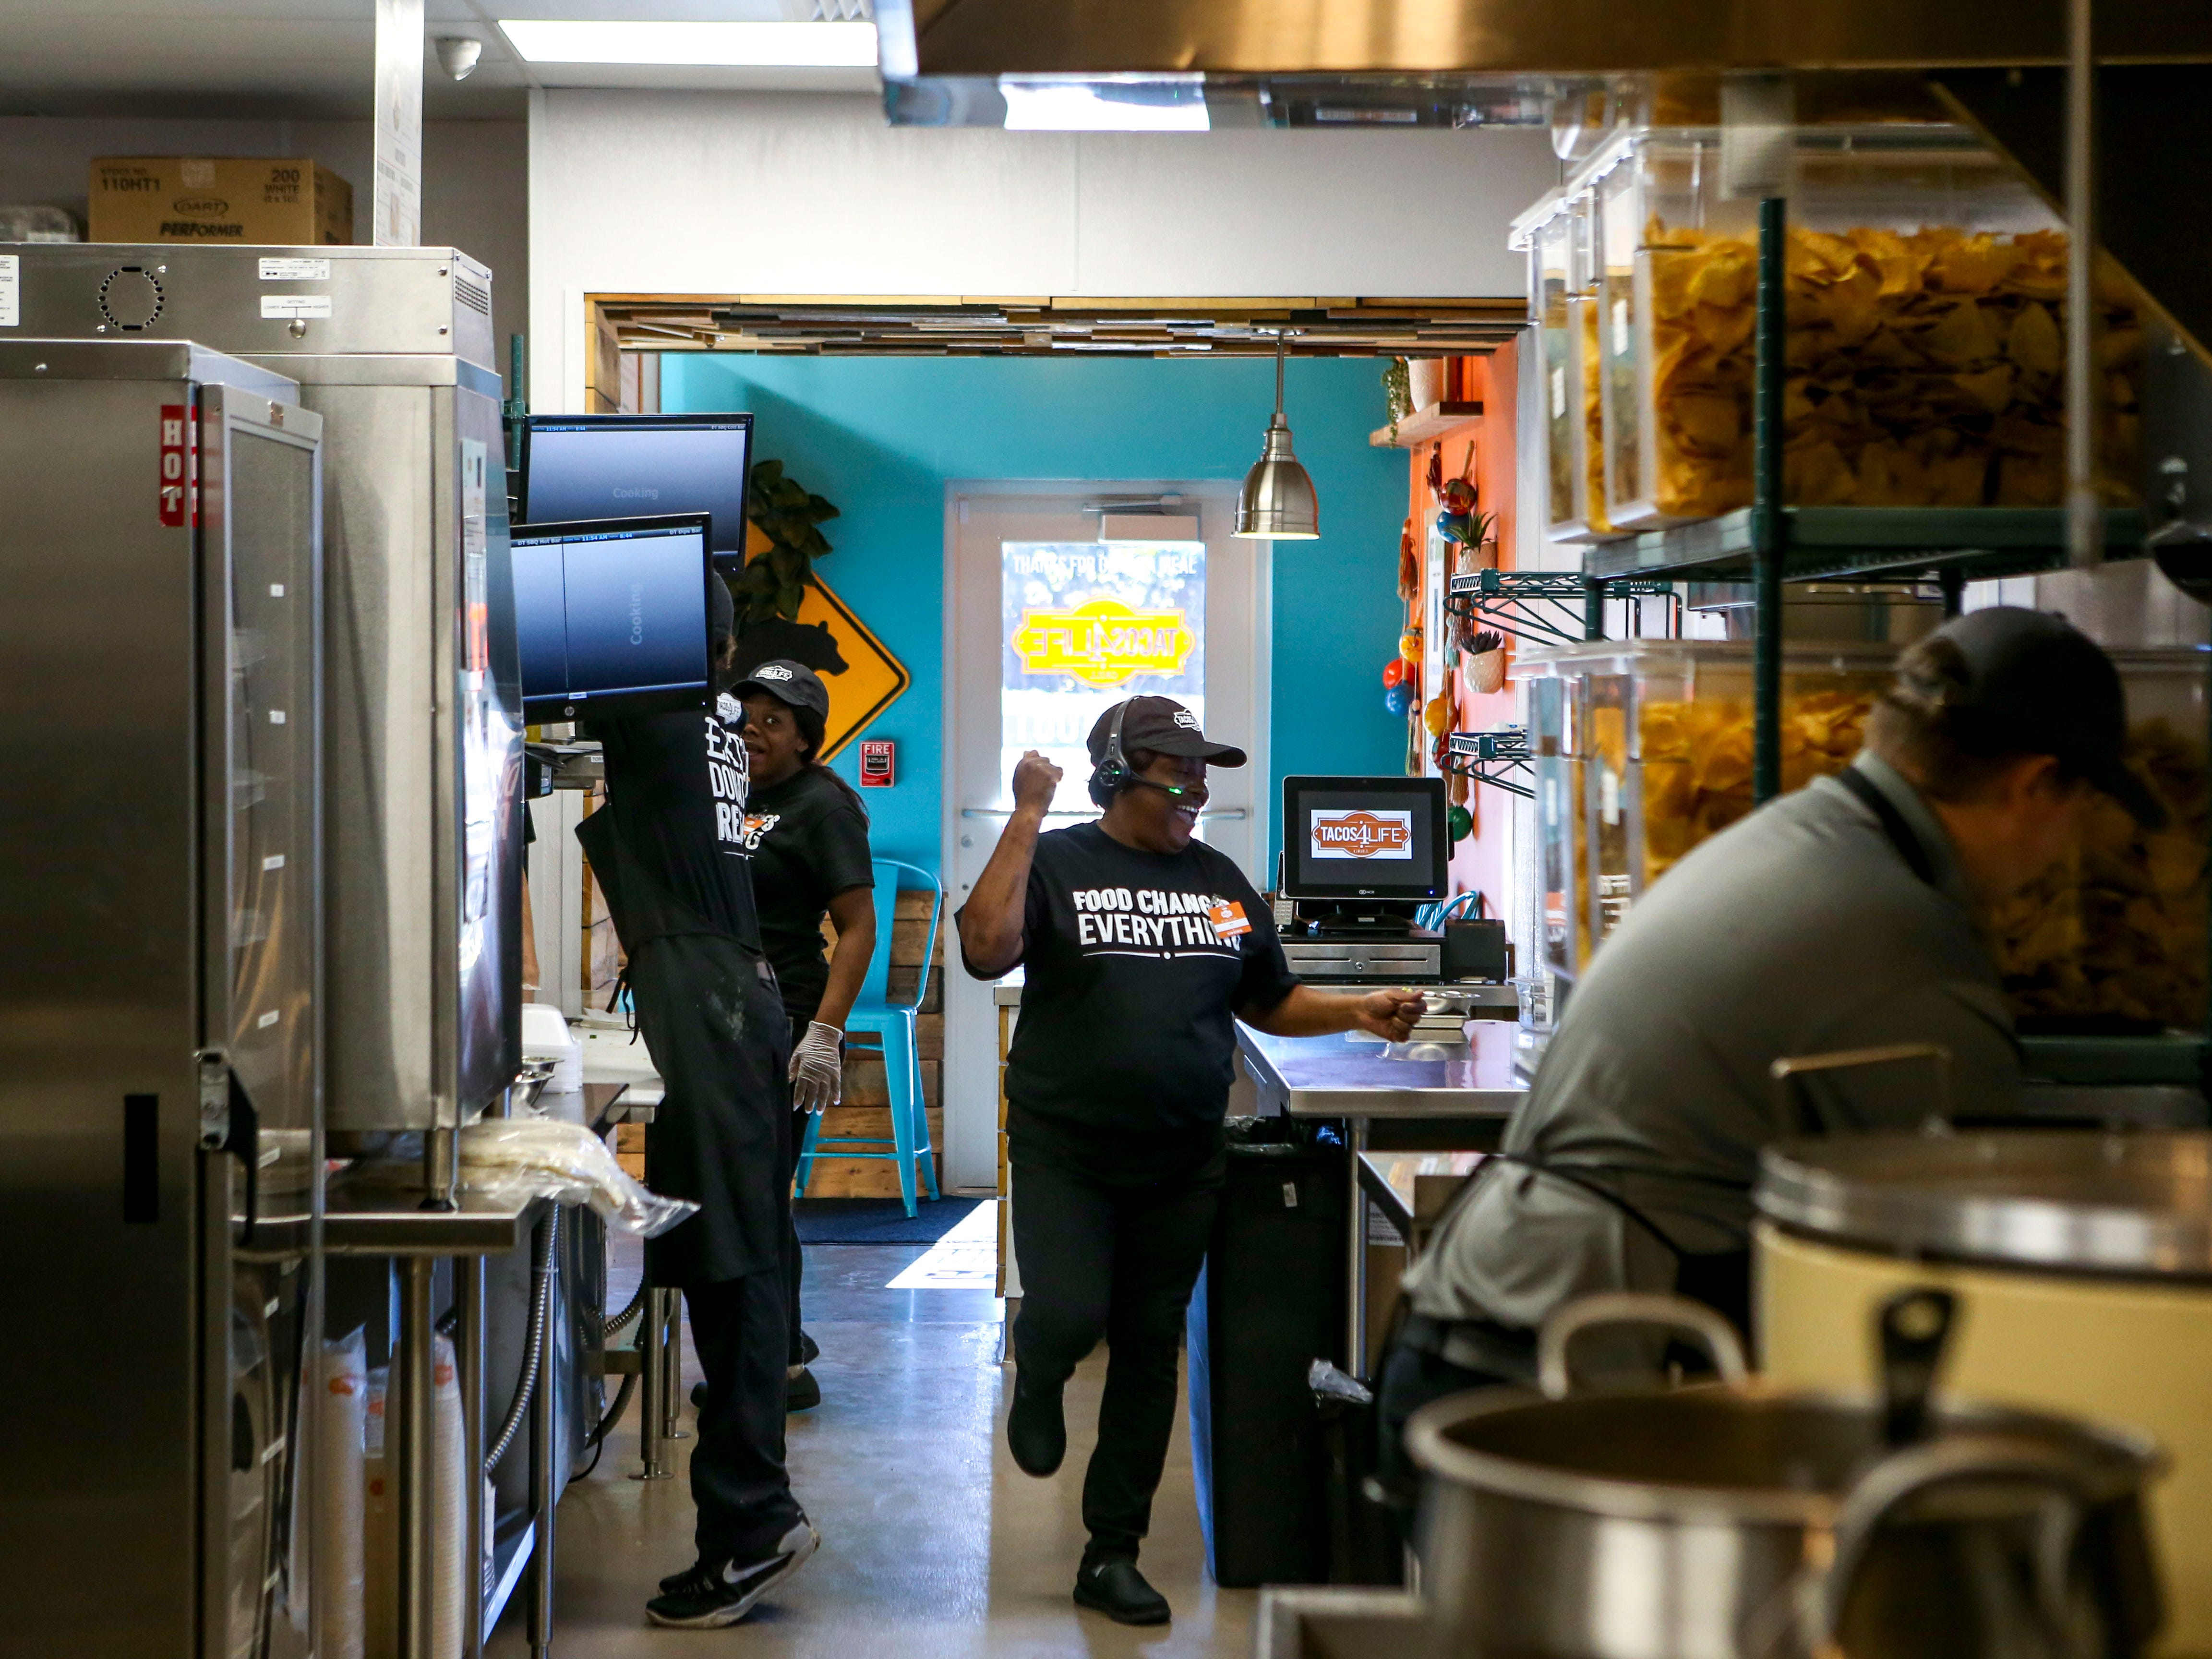 Employees take orders at the drive-thru during the soft opening at Tacos 4 Life, a new restaurant in Jackson, Tenn., on Monday, Oct. 29, 2018.